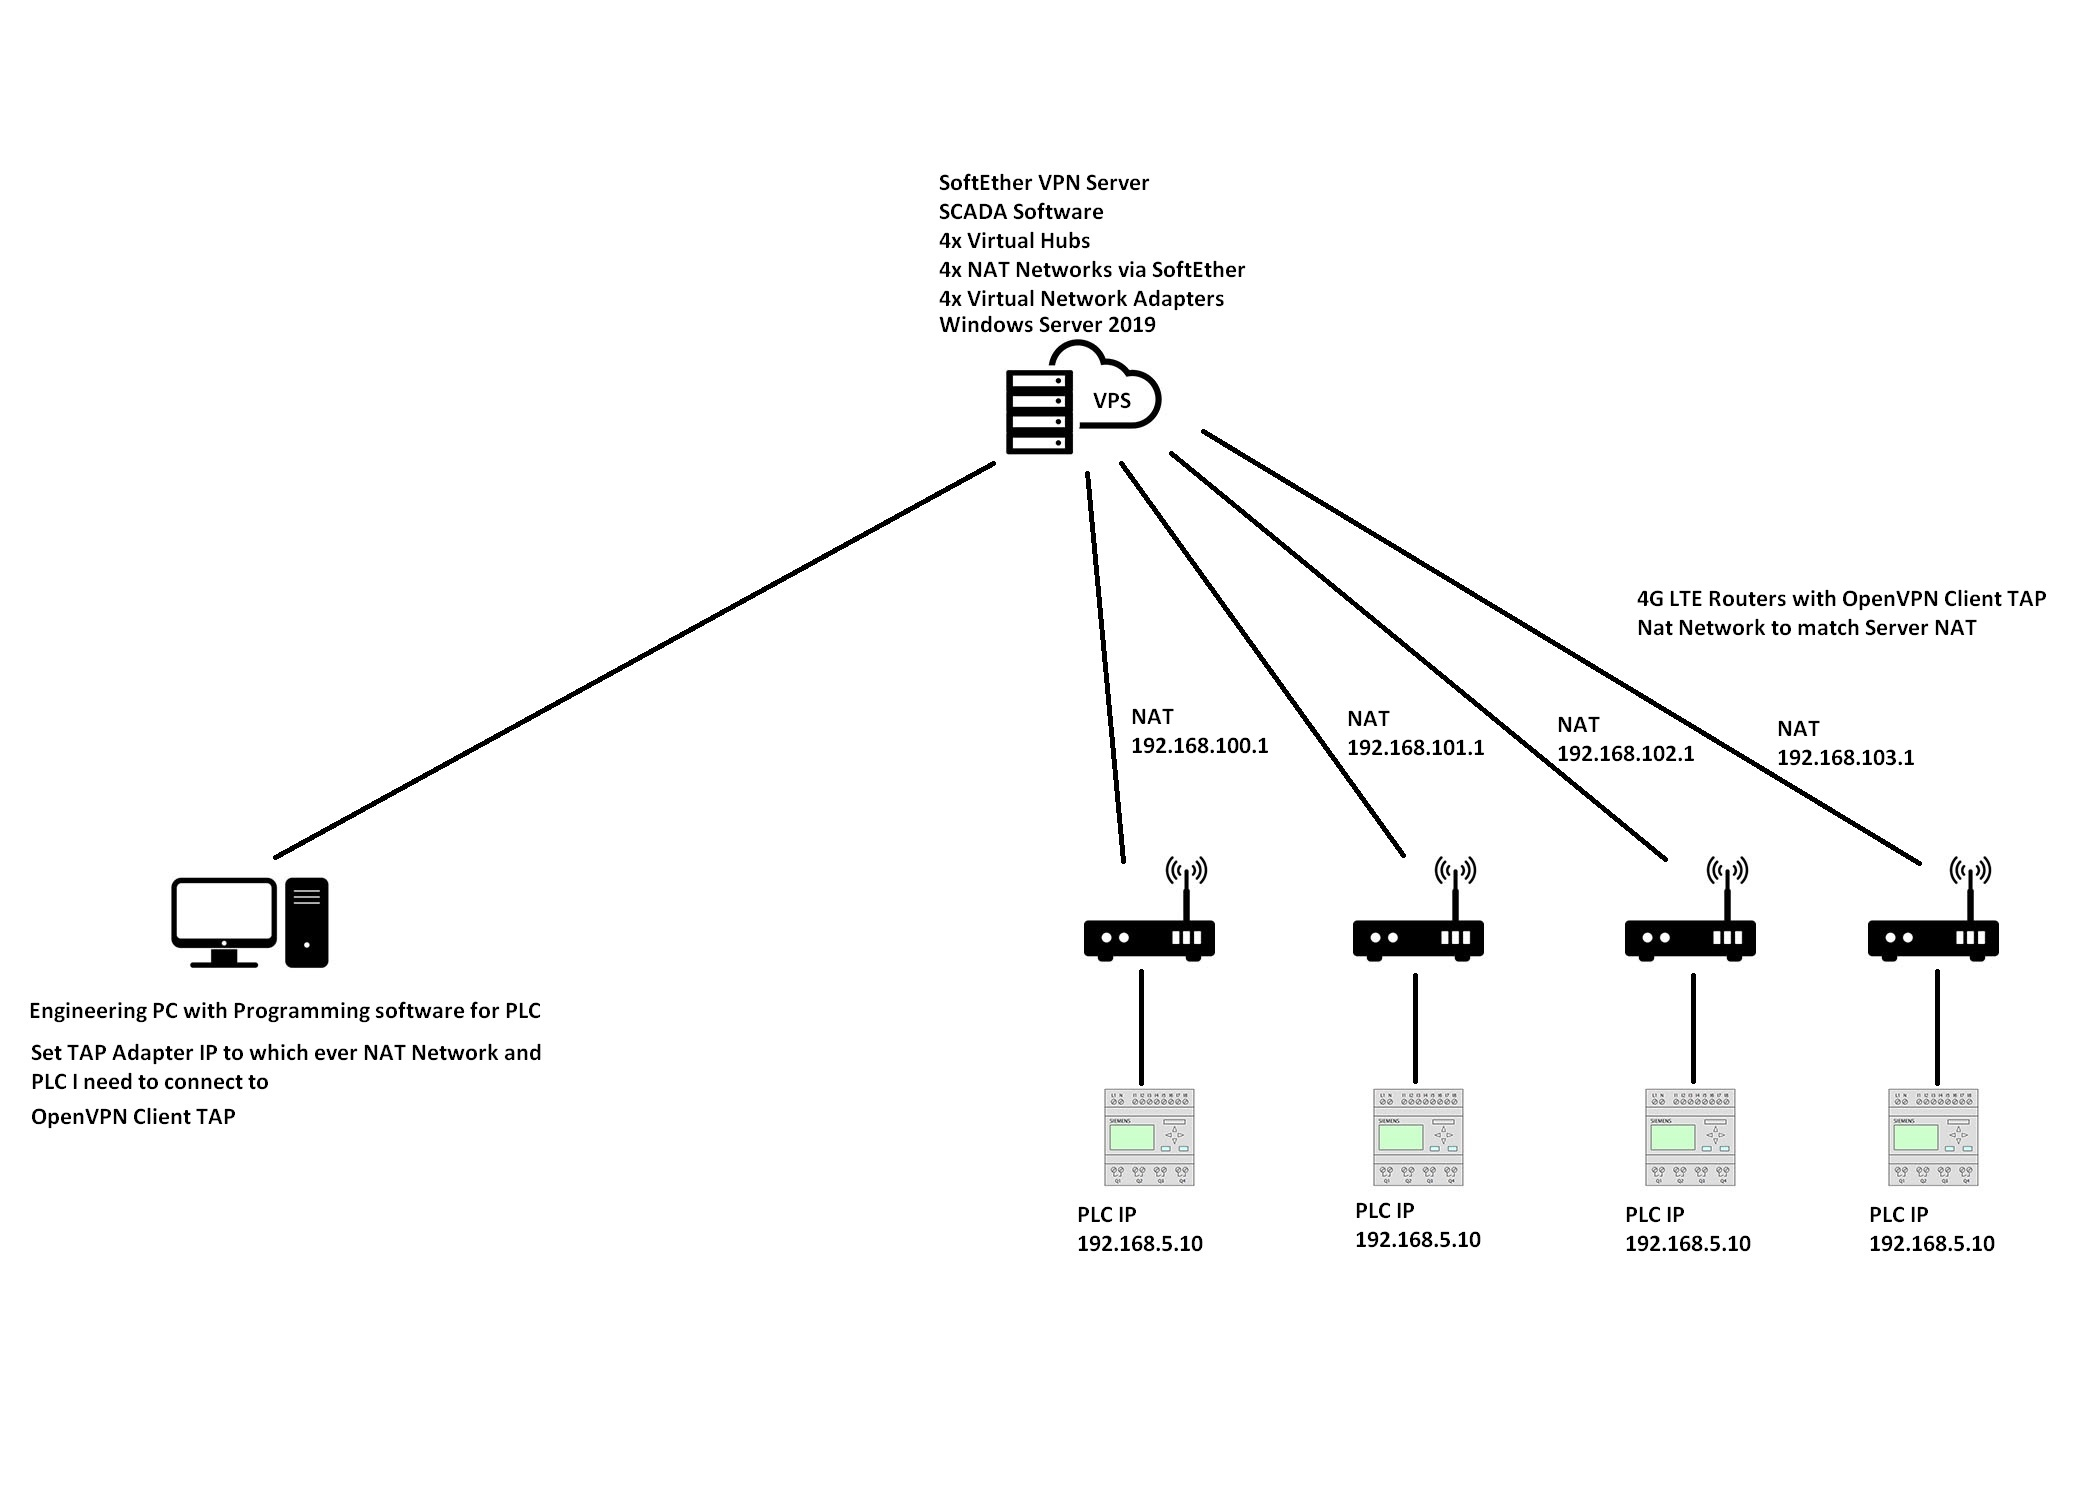 Plc Remote Access With Openvpn Client And Multiple Plcs